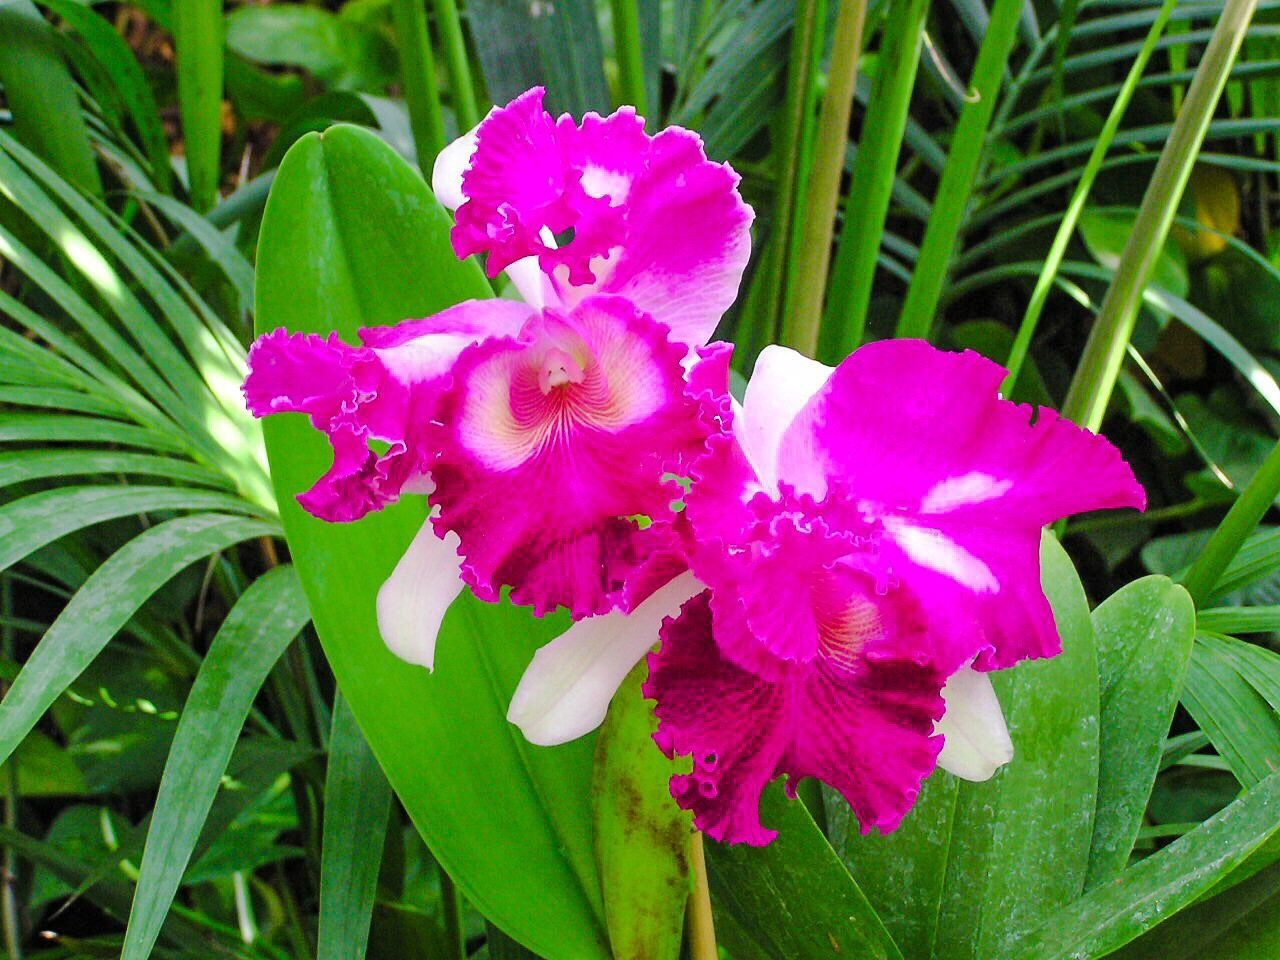 Flower Head Growth Flower Petal Fragility Pink Color Plant Green Color Beauty In Nature Nature Leaf Freshness Close-up Blooming Outdoors No People Day Nature Blooming Flower Orchids Orchid Blossoms Orchid Pink Flower Floral Flowers